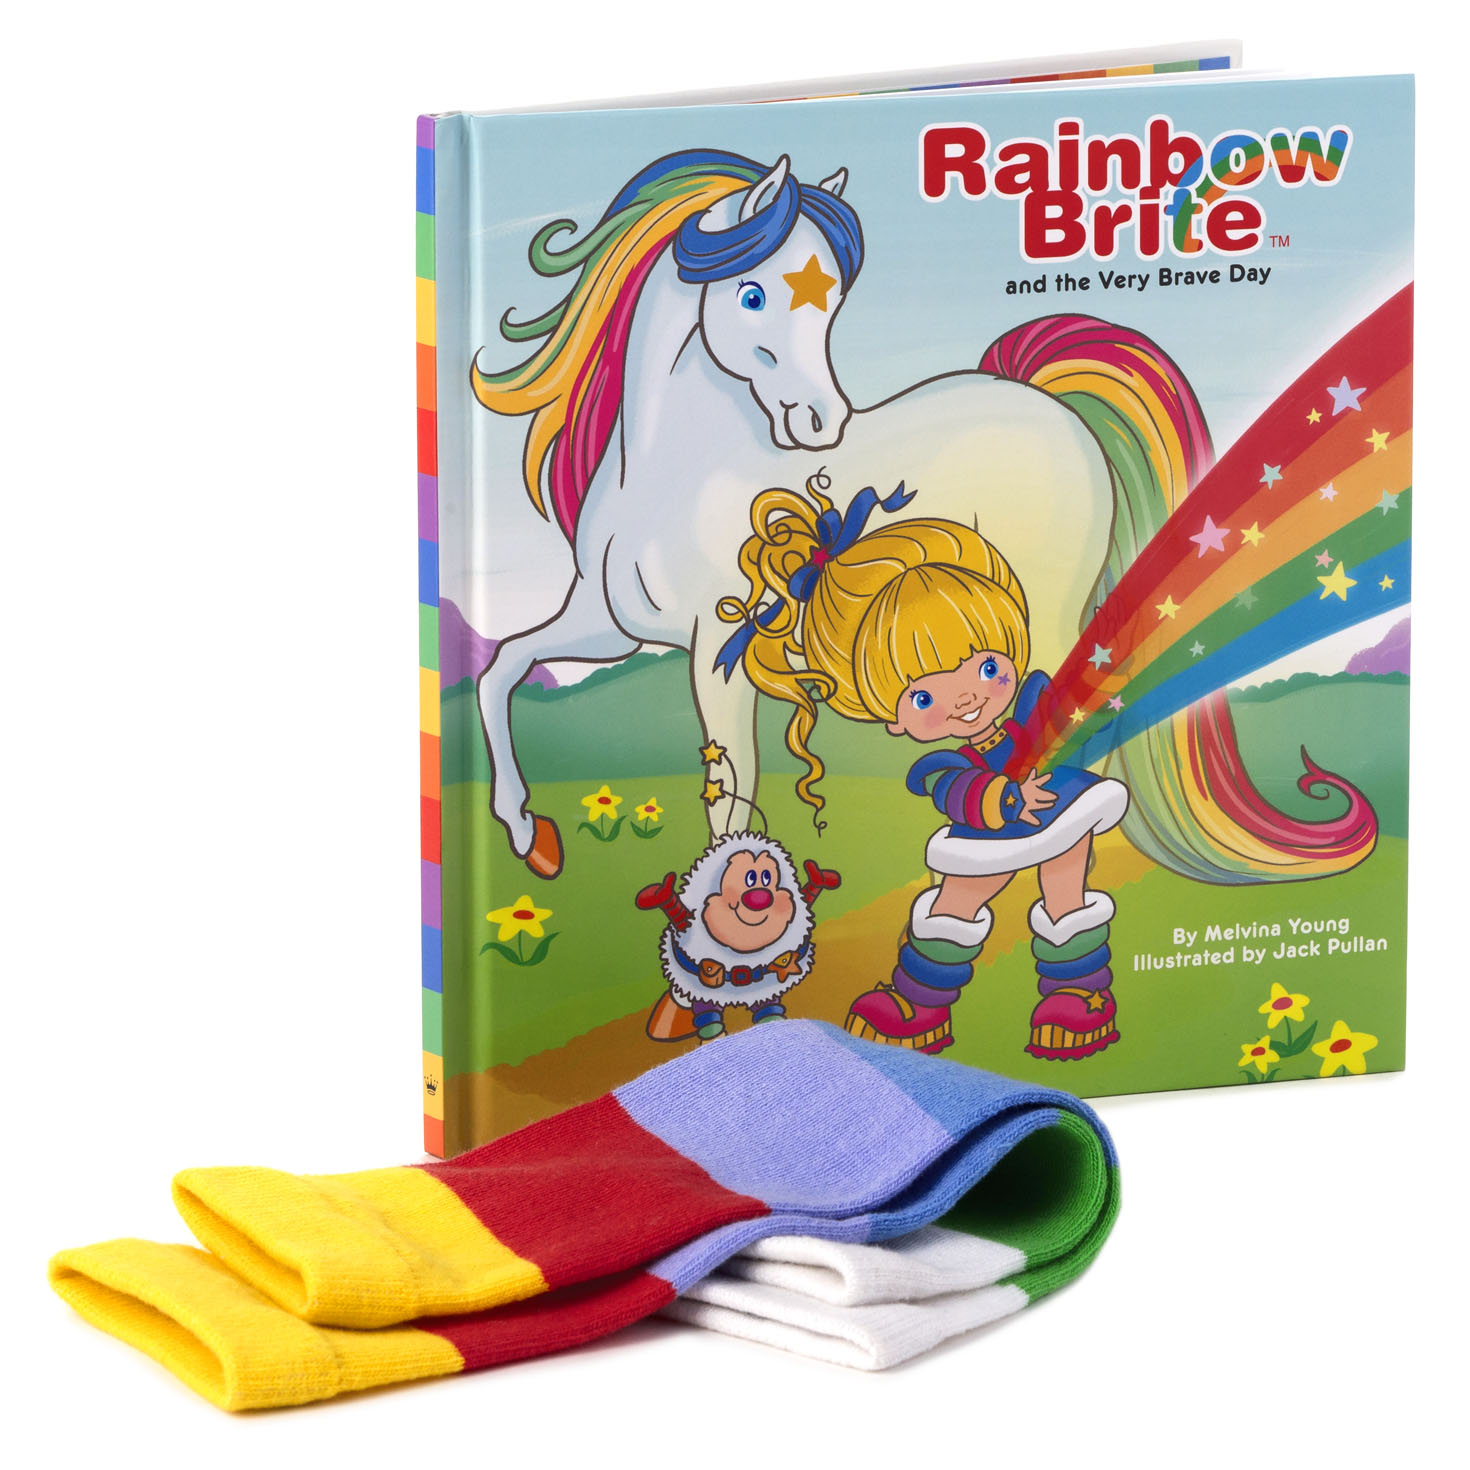 hallmark brings back classic rainbow brite products online press release distribution service prweb